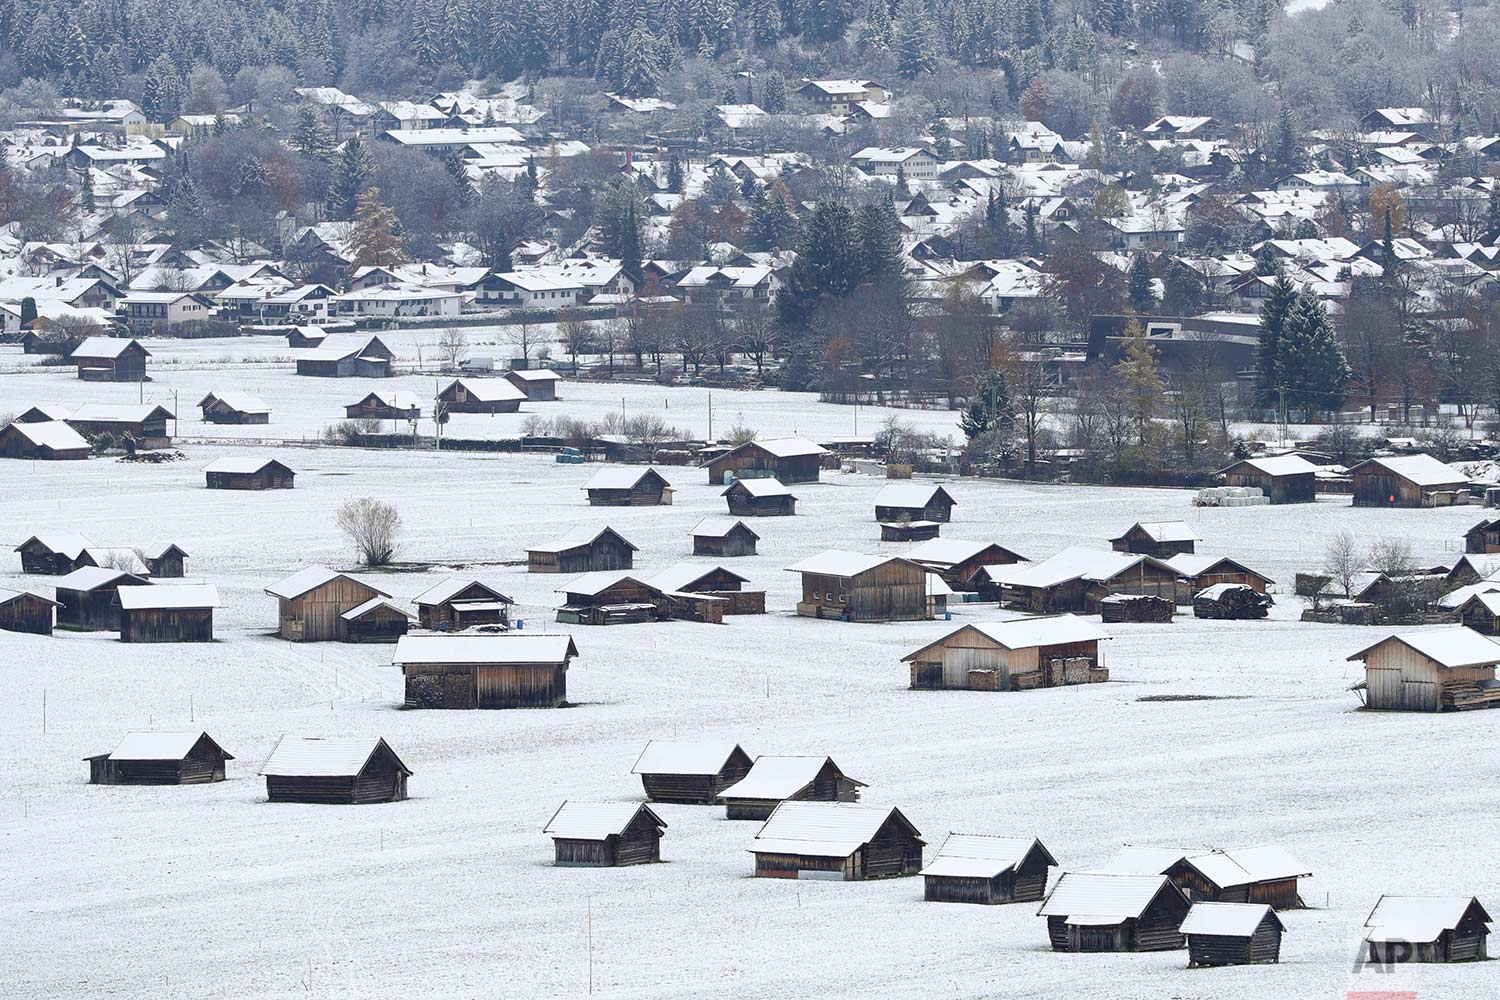 First snow of the season covers wooden cottages in Garmisch-Partenkirchen, Germany, Monday, Nov. 13, 2017. (AP Photo/Matthias Schrader)